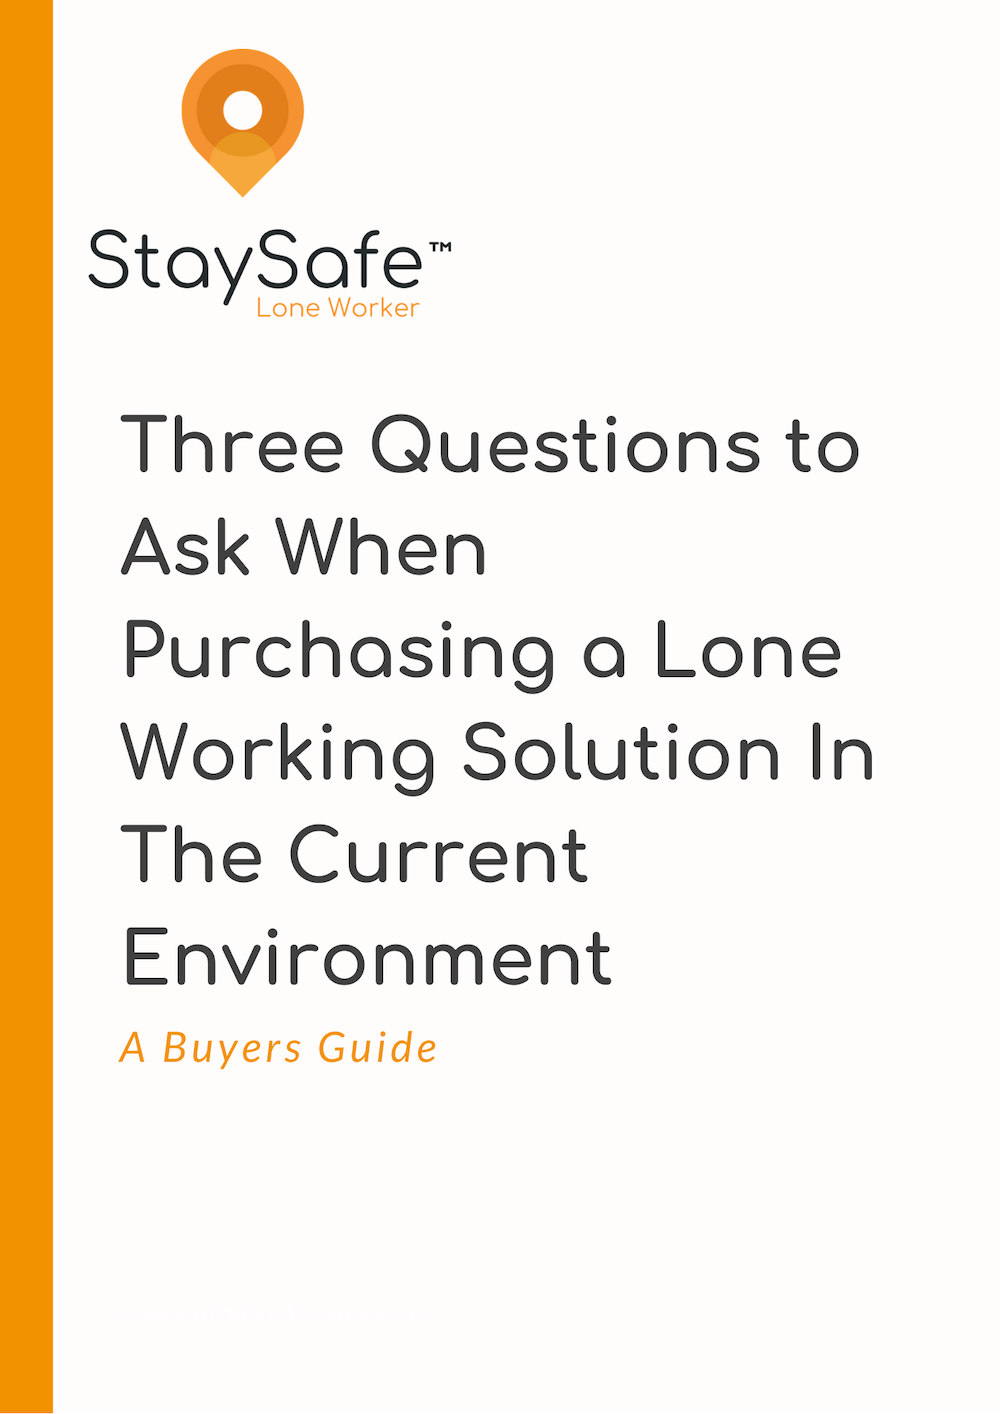 Three Questions to Ask When Purchasing a Lone Working Solution